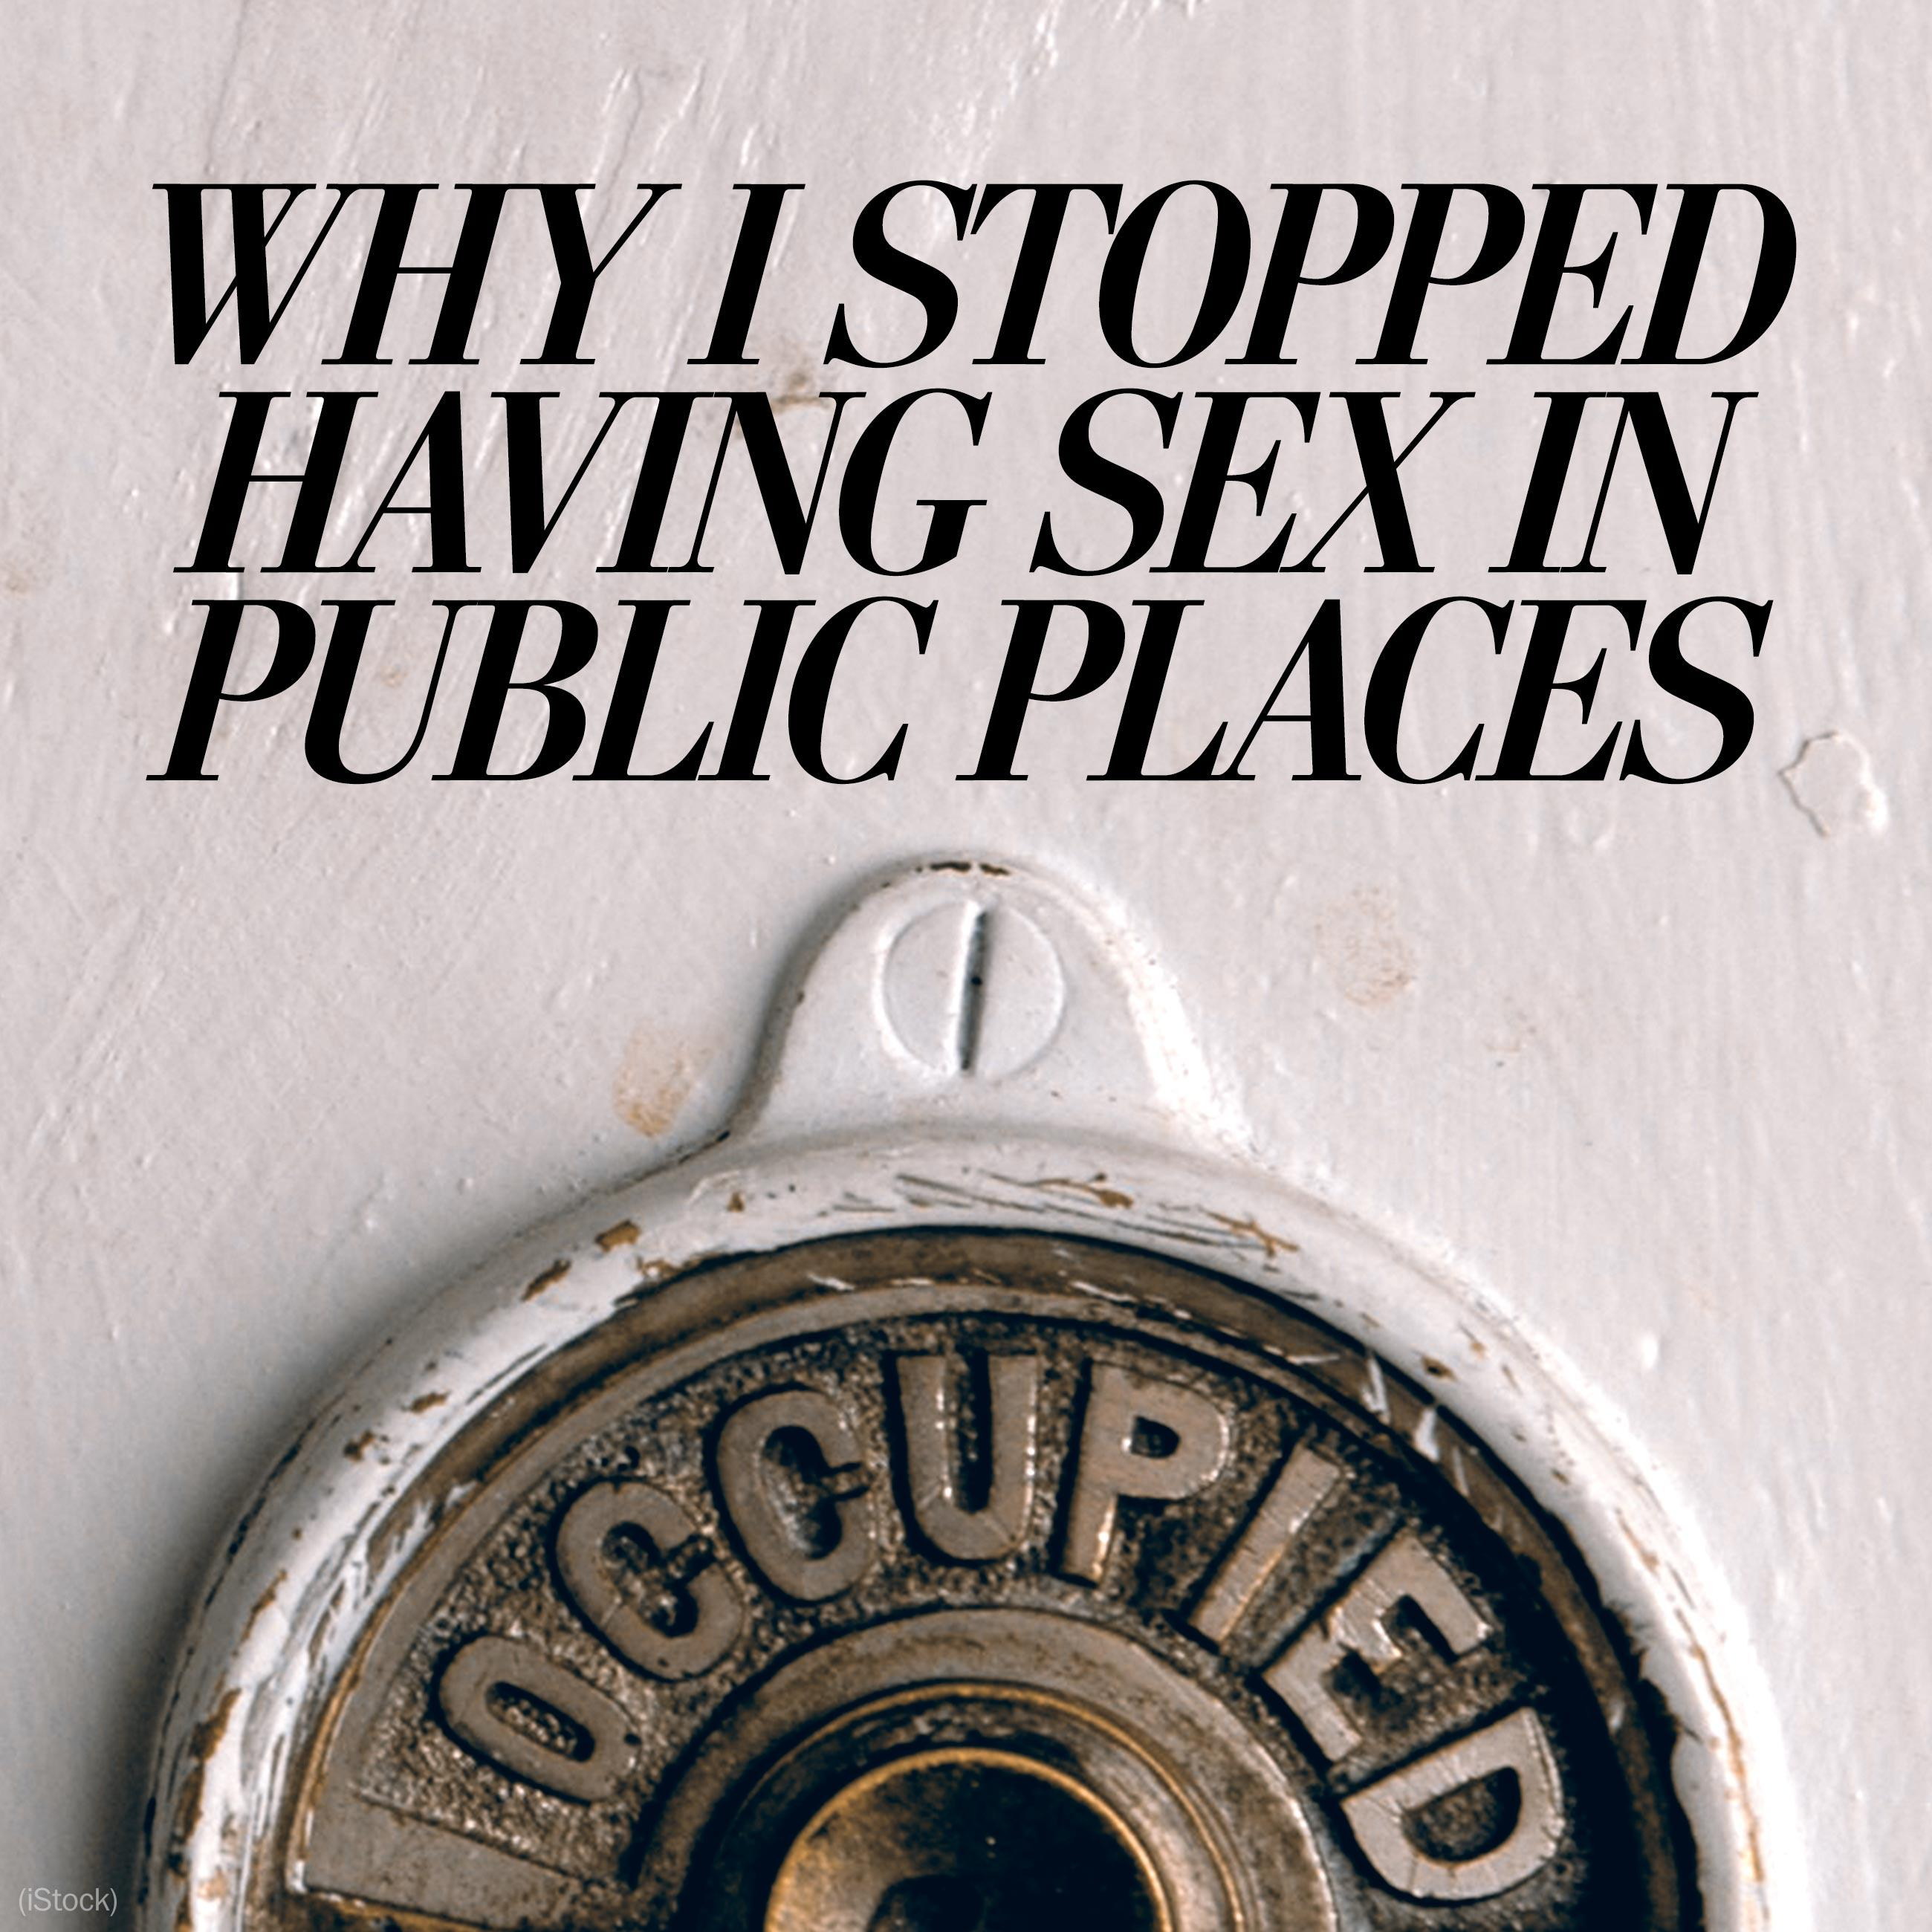 Why I stopped having sex in public places